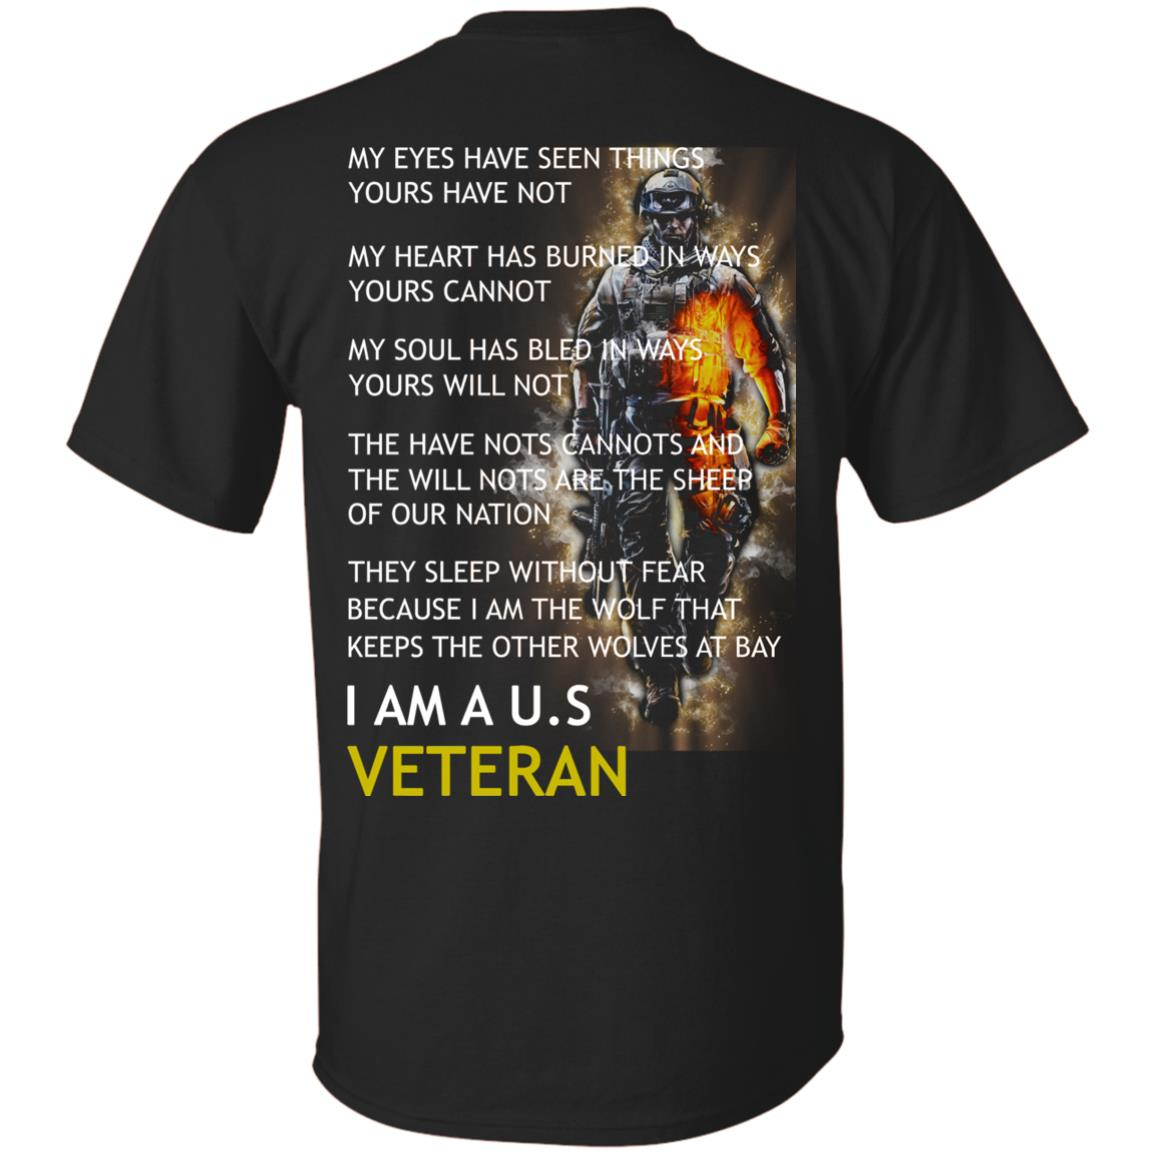 imagepx I am a US Veteran my eyes have seen things yours have not back side t shirt, hoodies